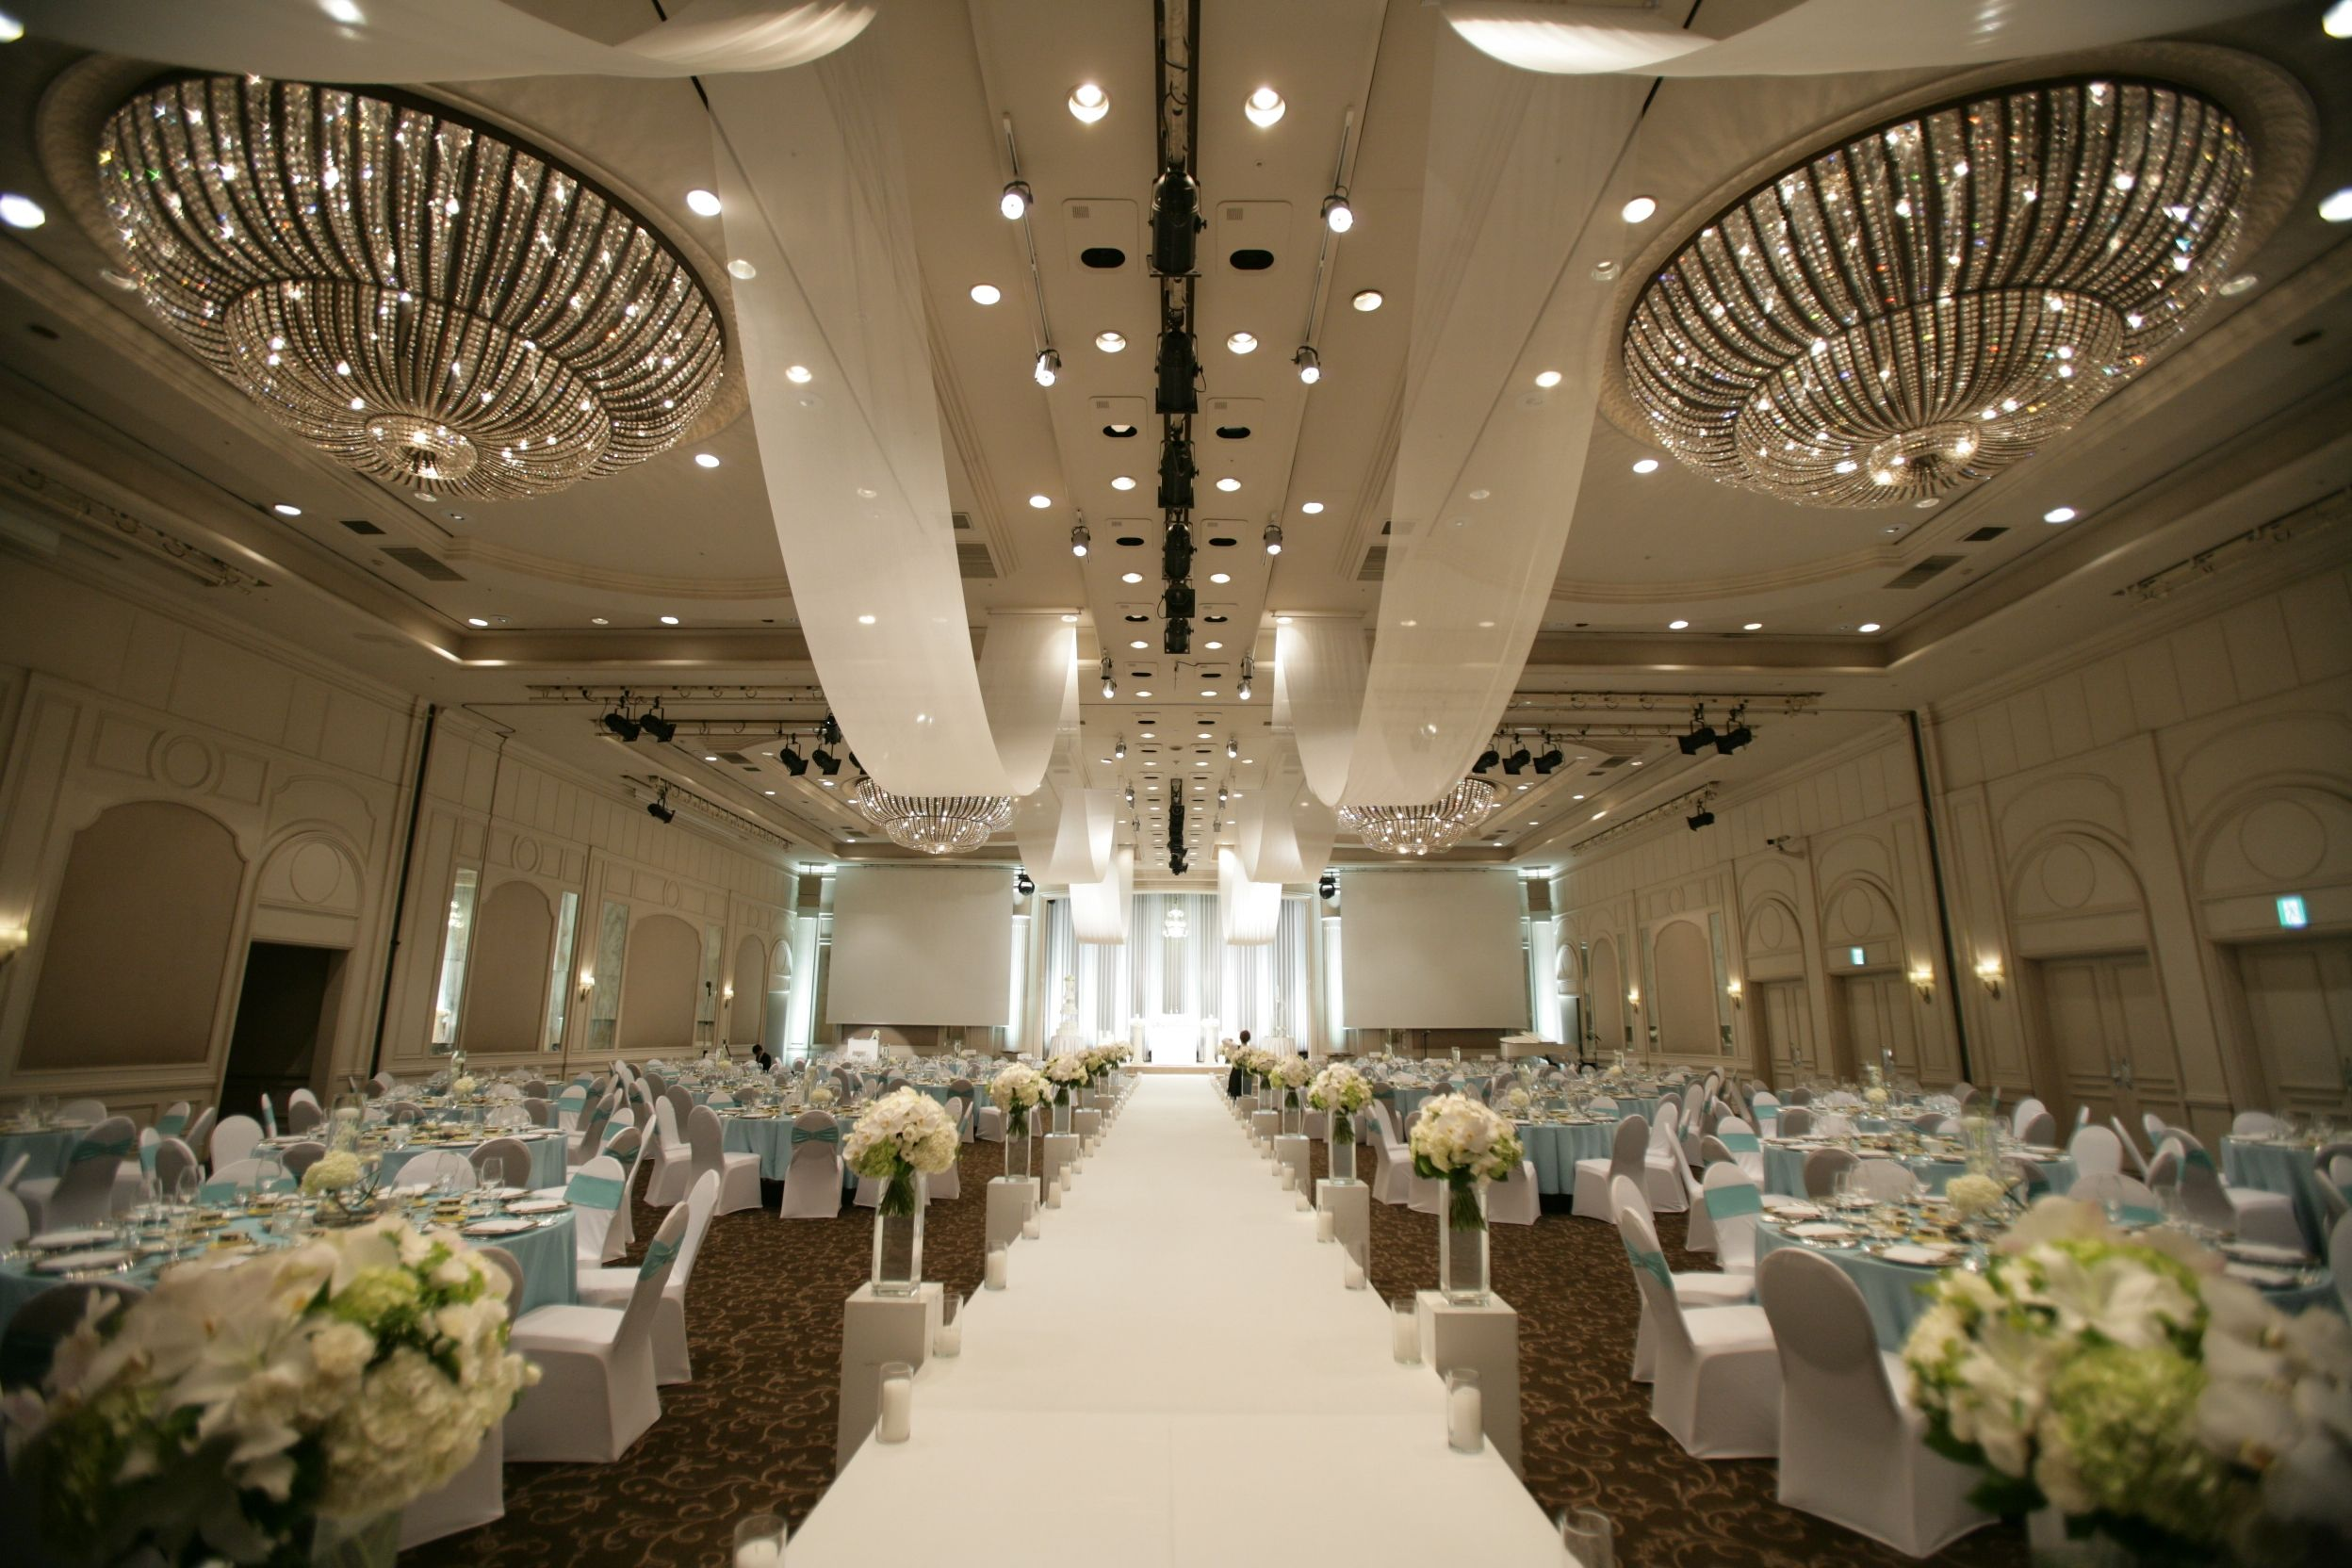 Grand ballroom decoration grandballroom wedding pinterest for Ball room decoration